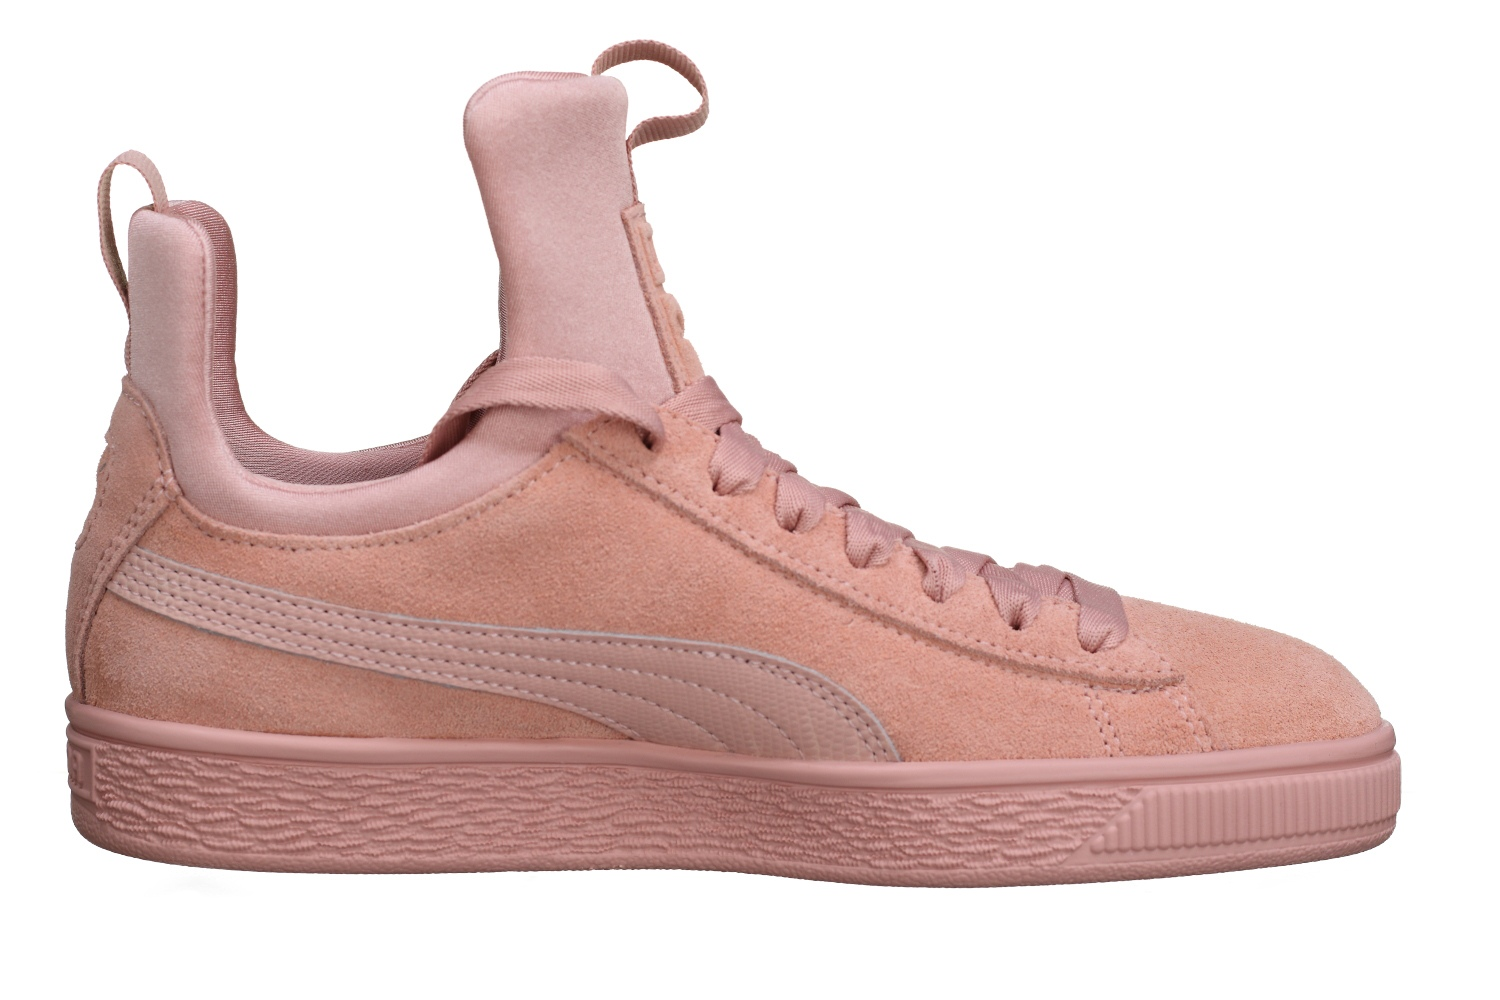 https://www.leadermode.com/141765/puma-suede-fierce-wn-s-366010-01-rose.jpg